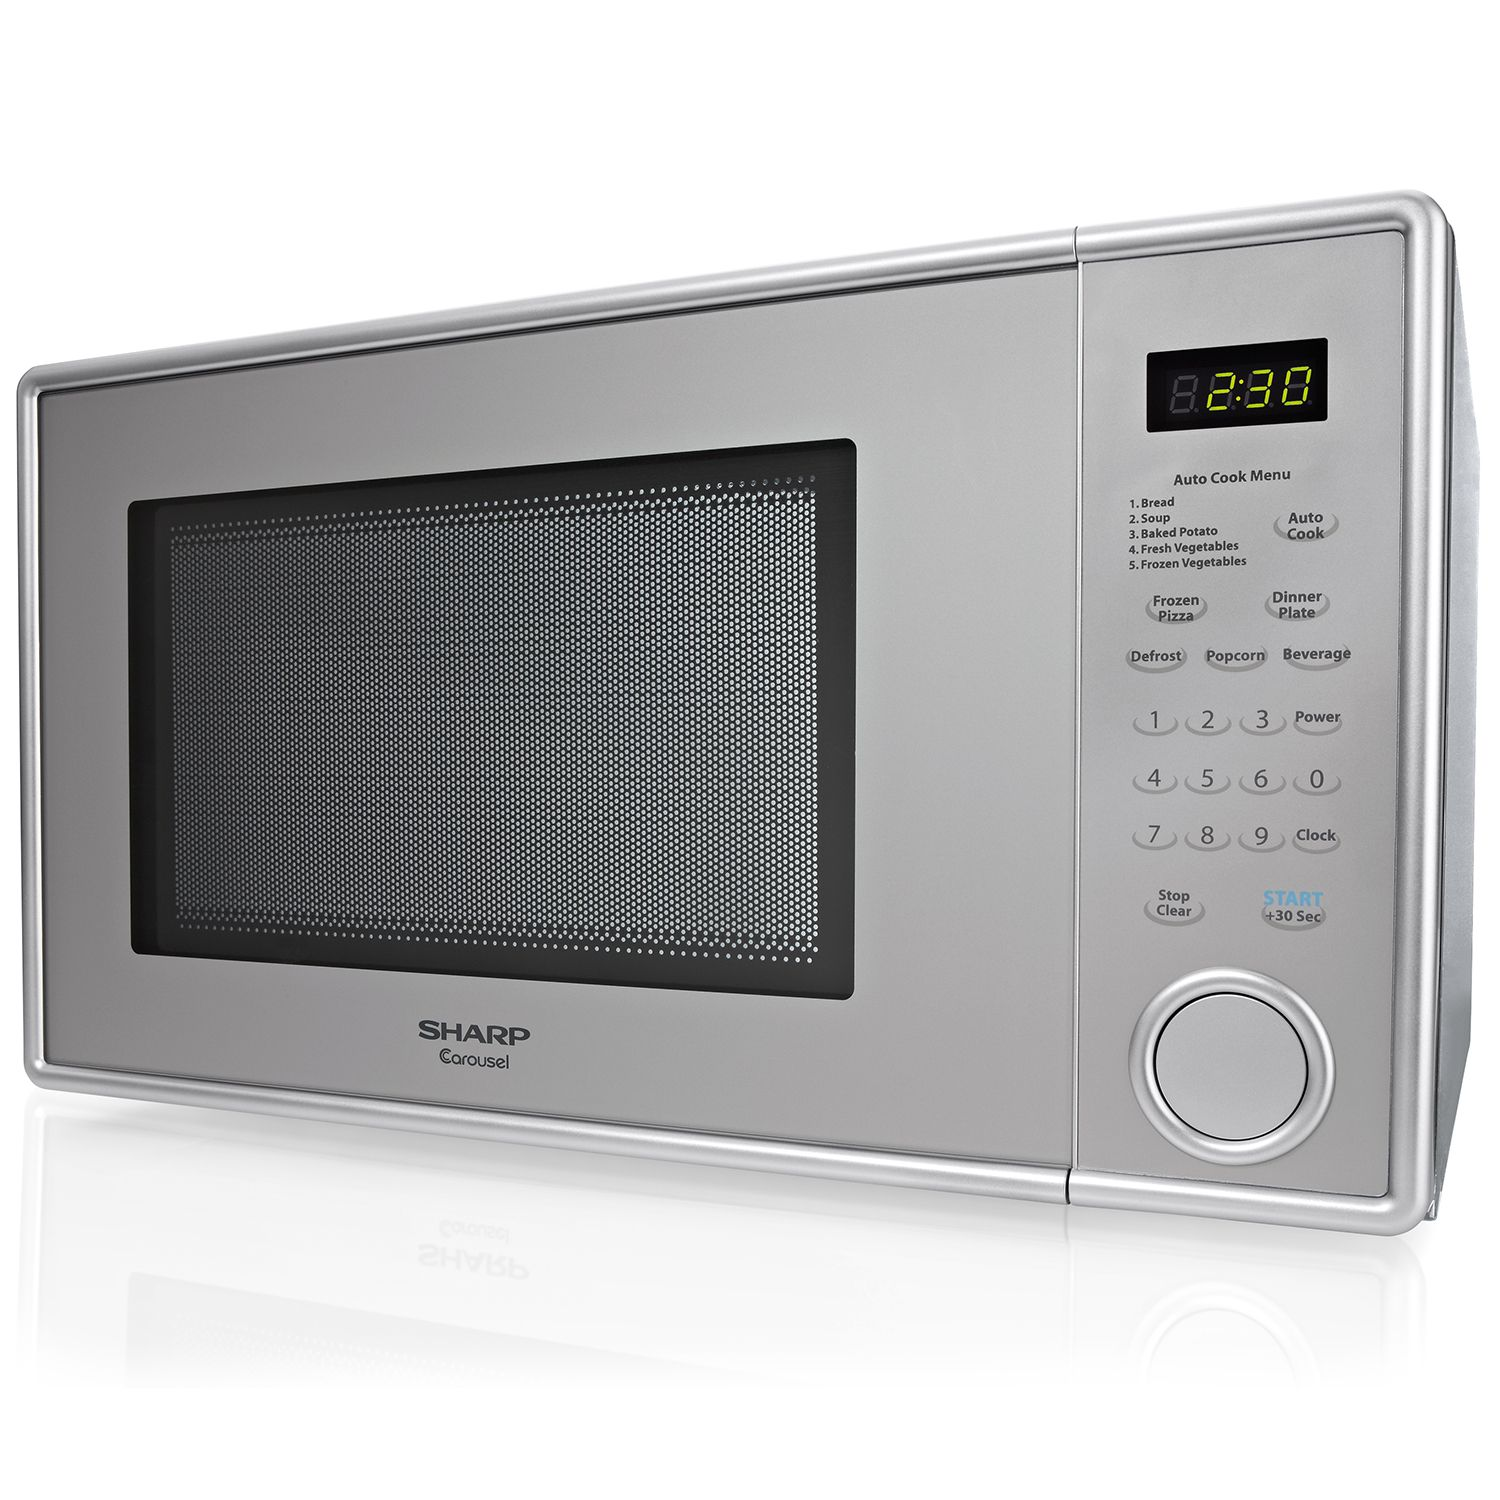 Sharp 1.1 cu. ft. Stainless Steel Countertop Microwave at Sears.com